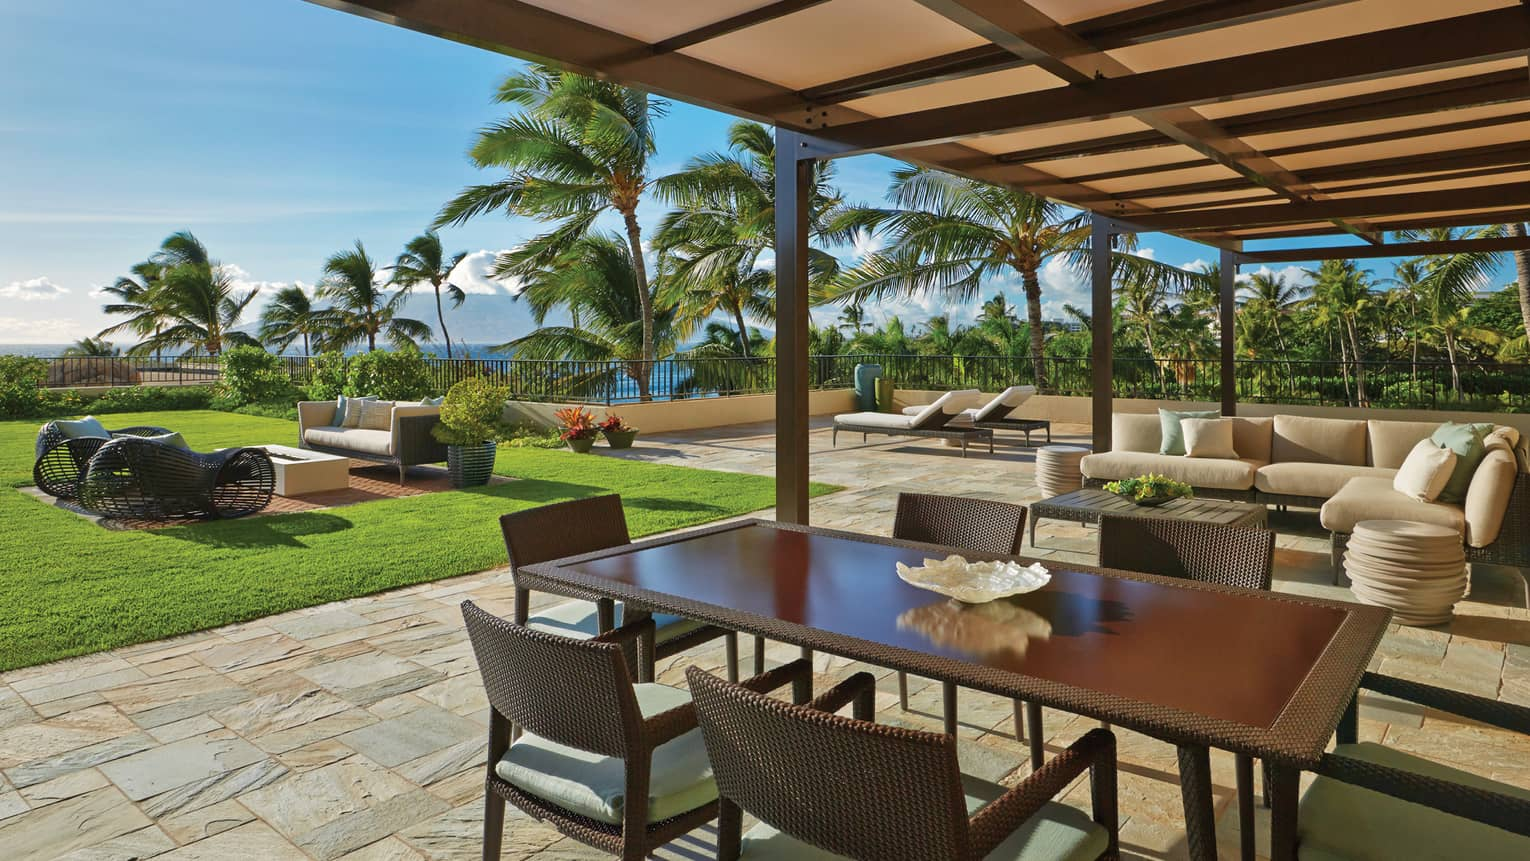 Lokelani Suite Outdoor Area with dining table and view of the ocean